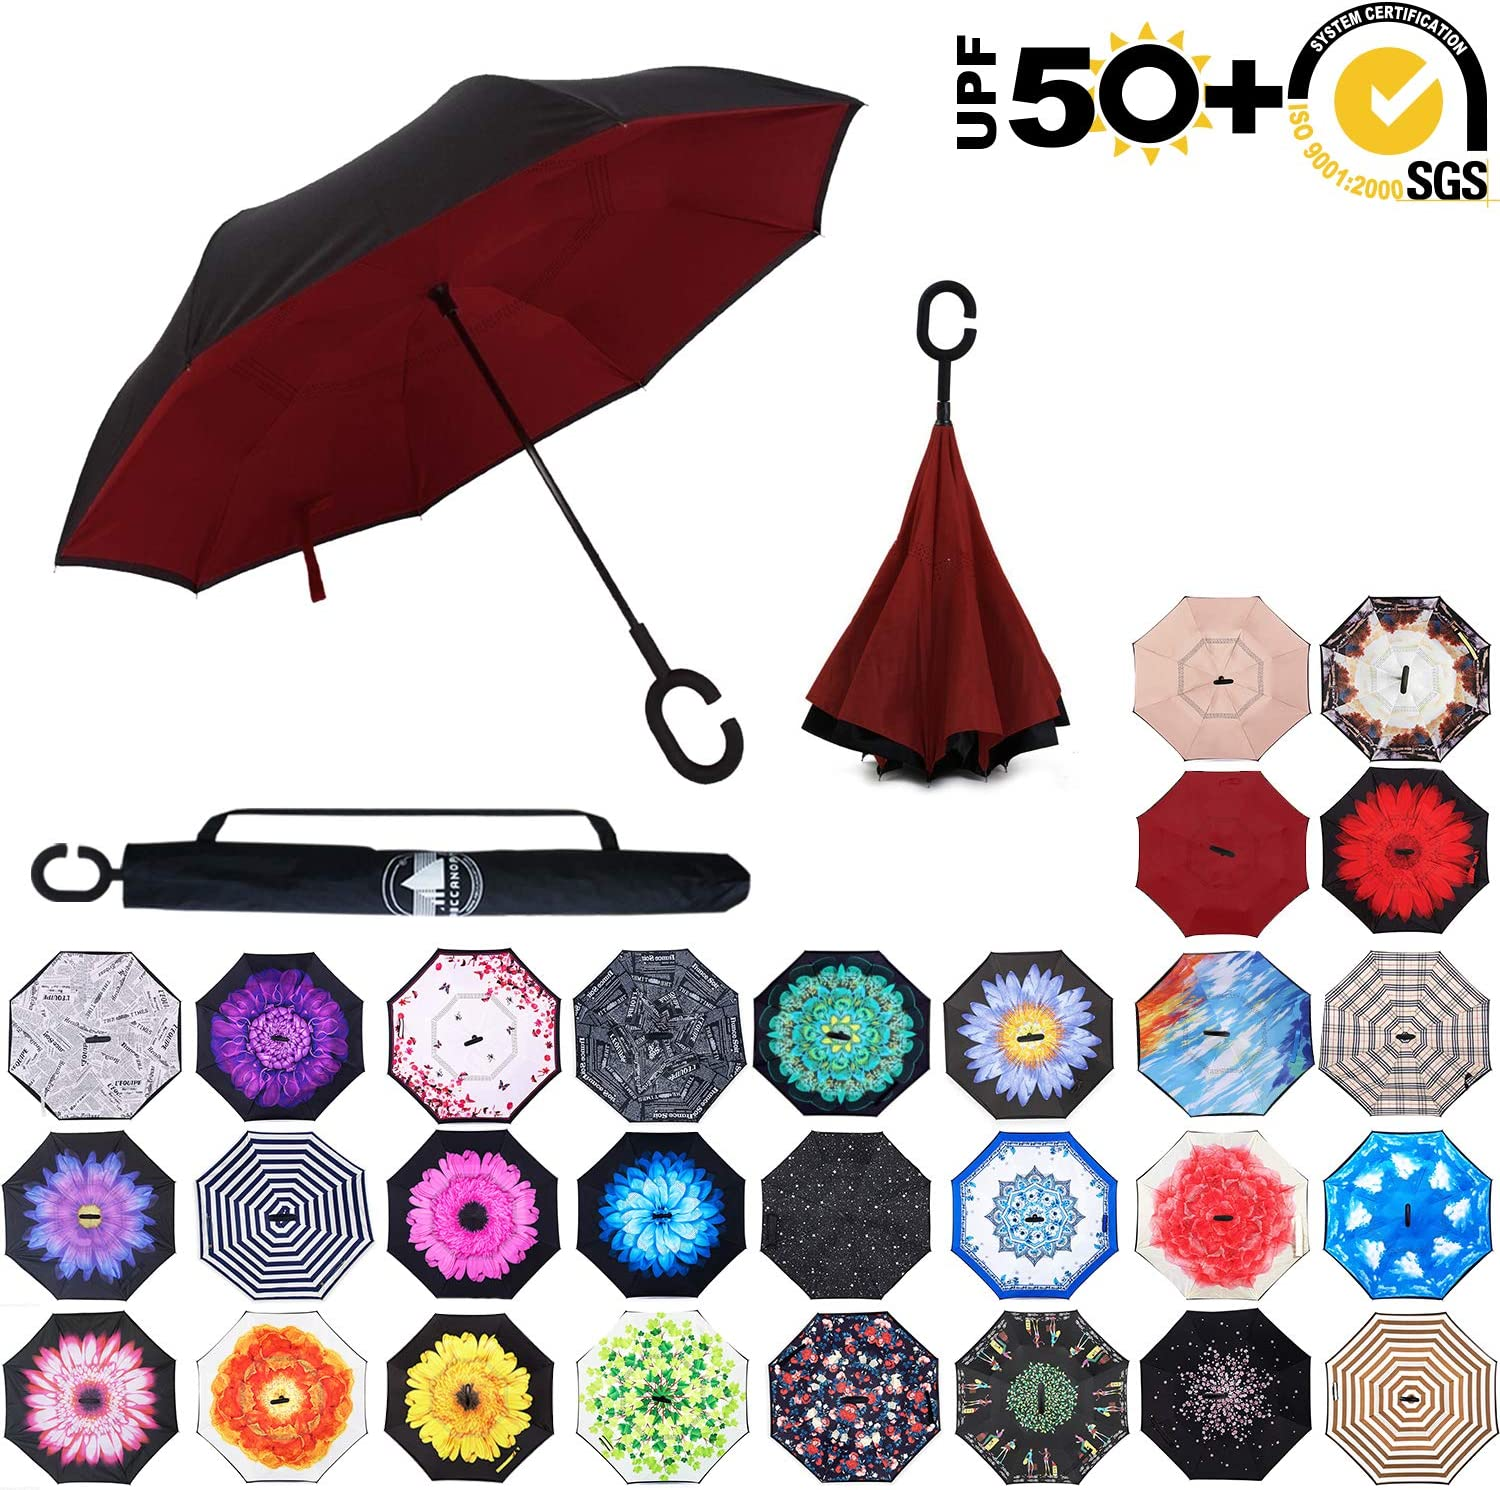 ABCCANOPY Inverted Umbrella,Double Layer Reverse Windproof Teflon Repellent Umbrella for Car and Outdoor Use Big Stick Umbrella with C-Shaped Handle and Carrying Bag UPF 50